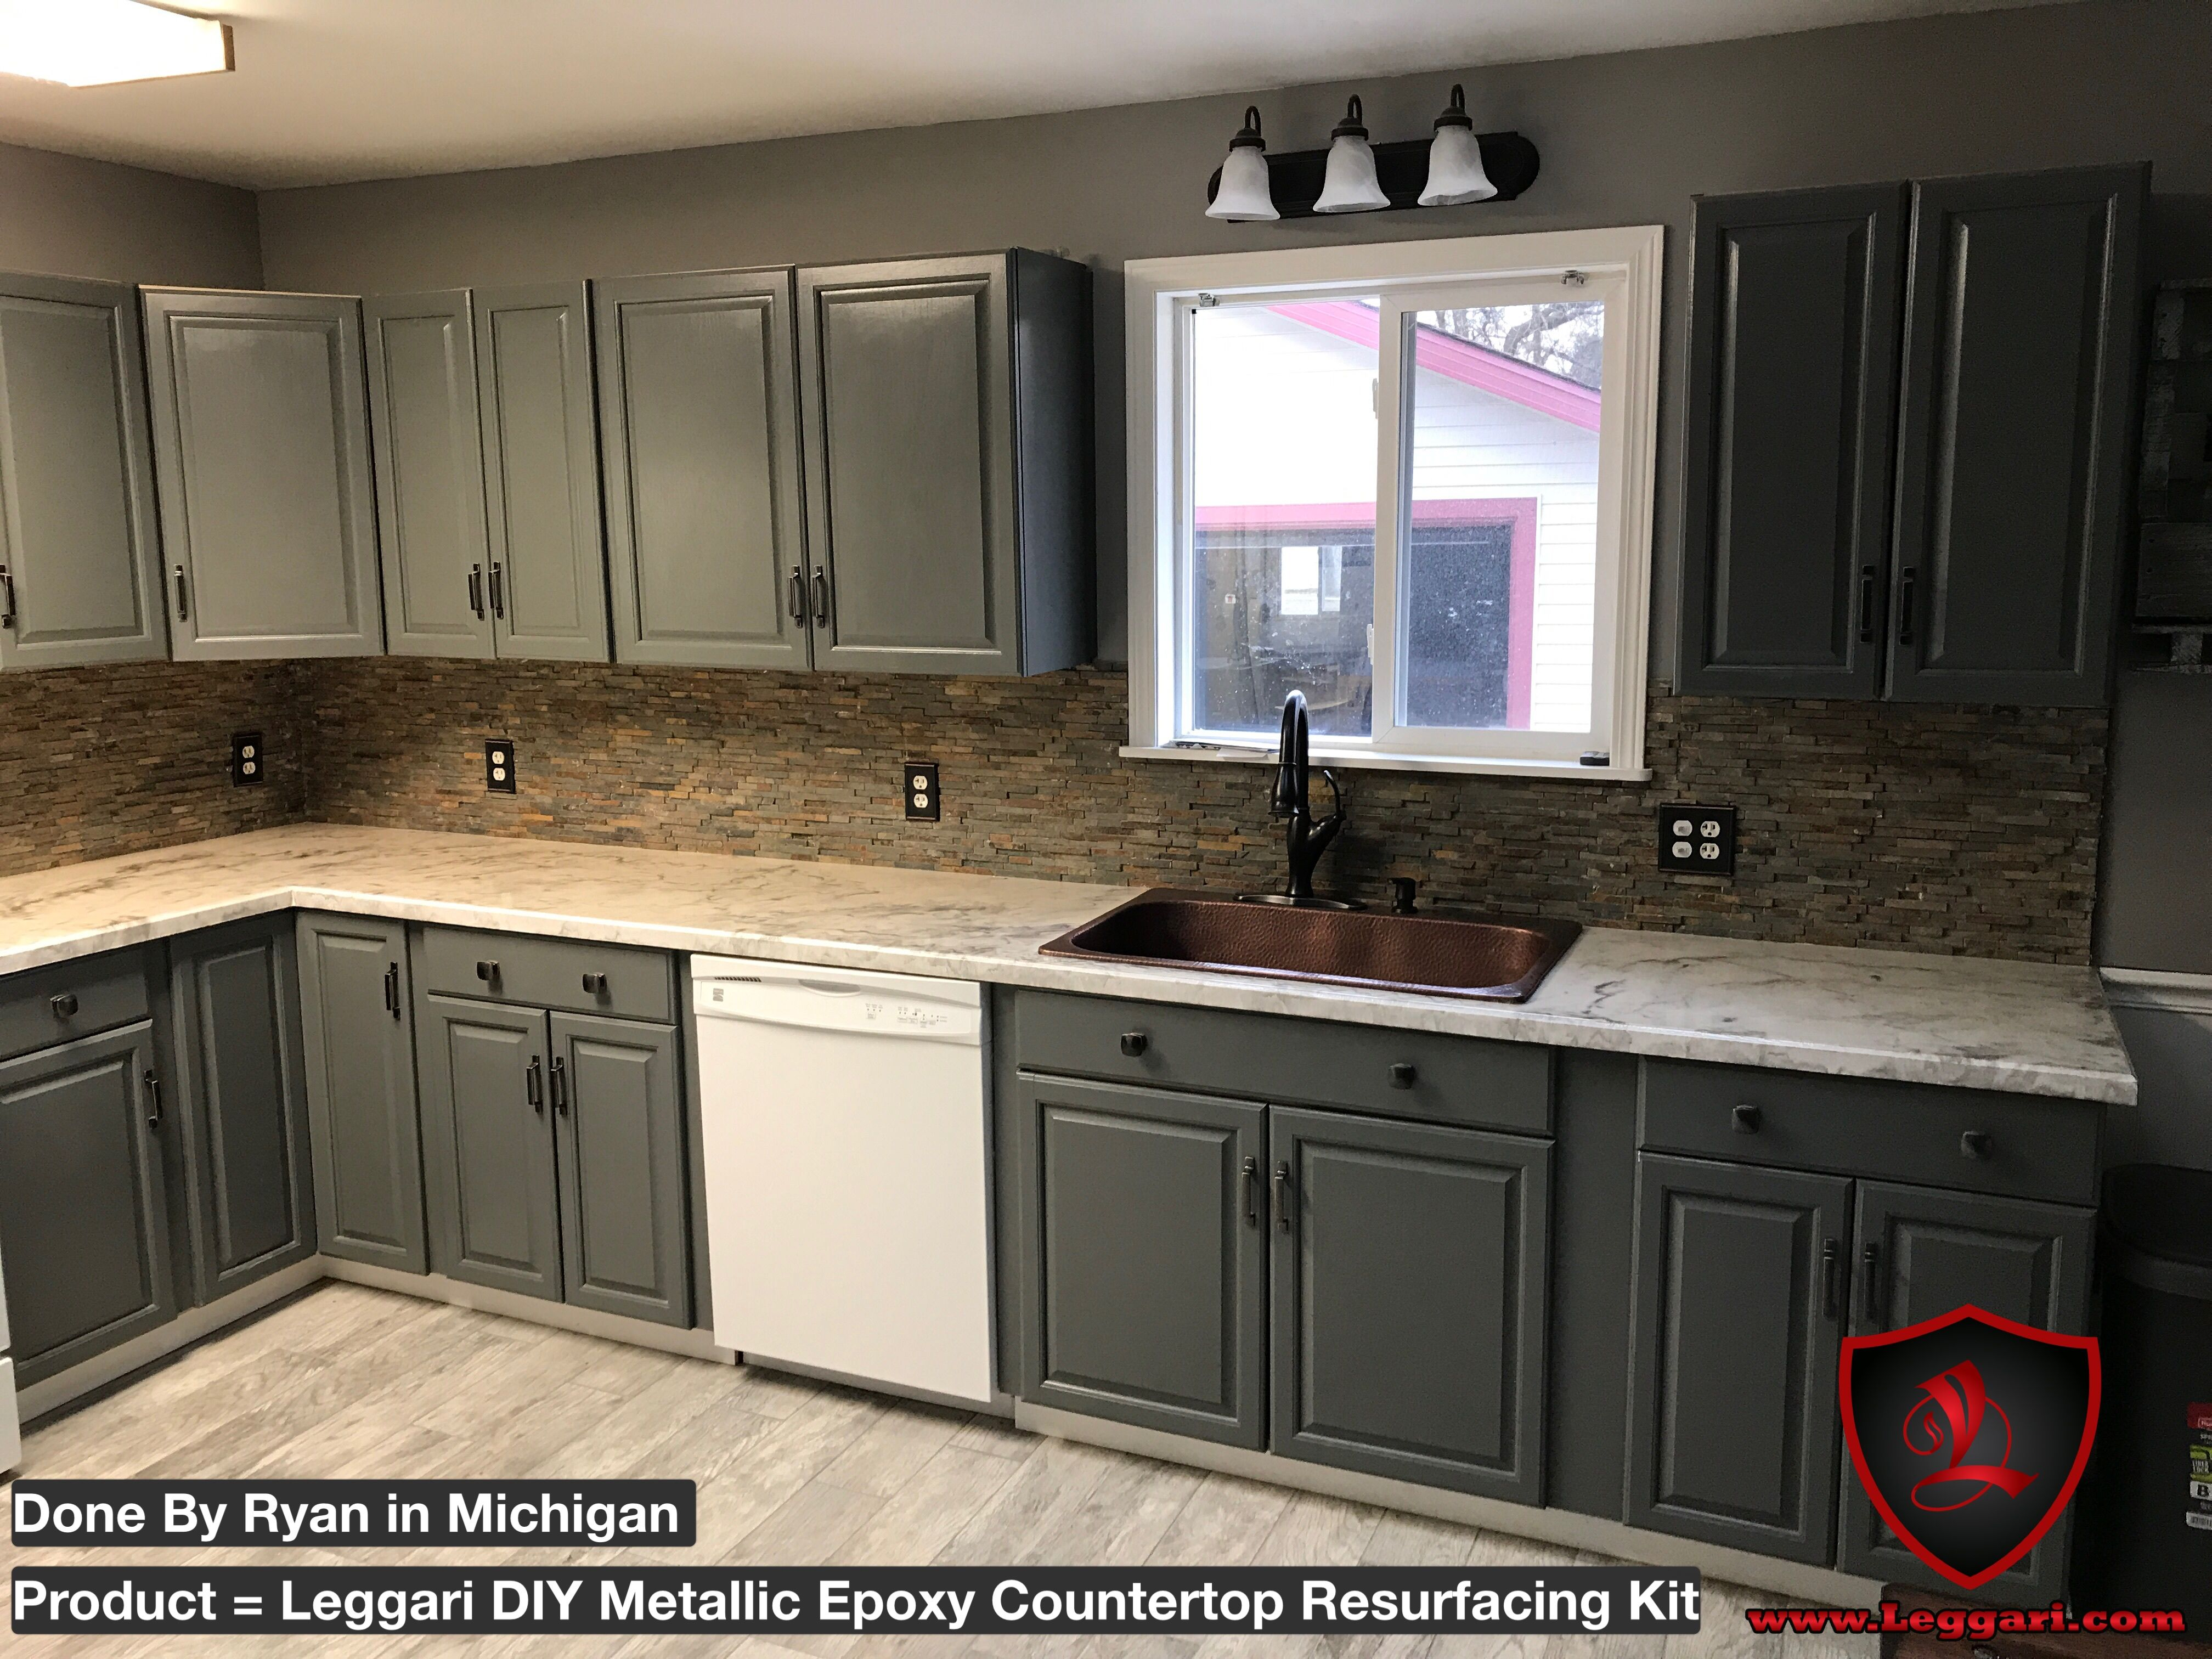 resurface kitchen countertops red rugs we make resurfacing easy with our diy